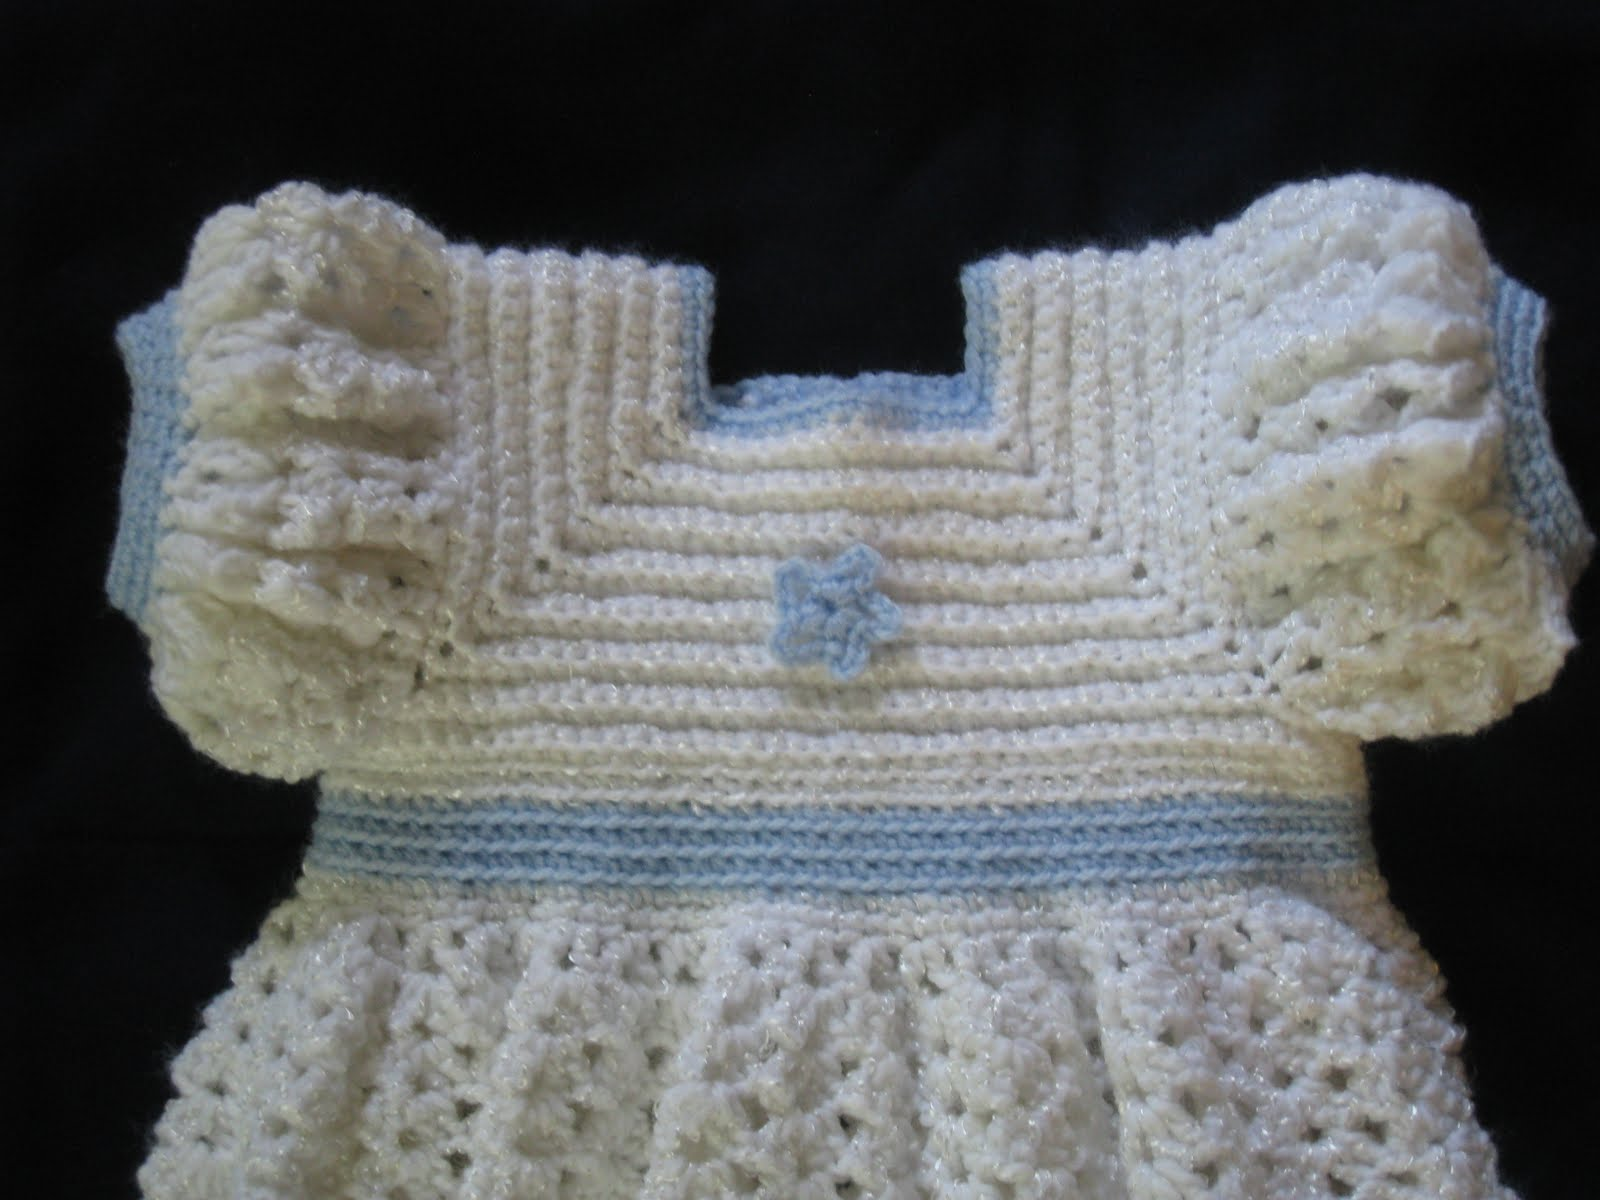 Crochet Ruffled Baby Dress Pattern : My creativity: A Ruffled Crocheted Baby Dress